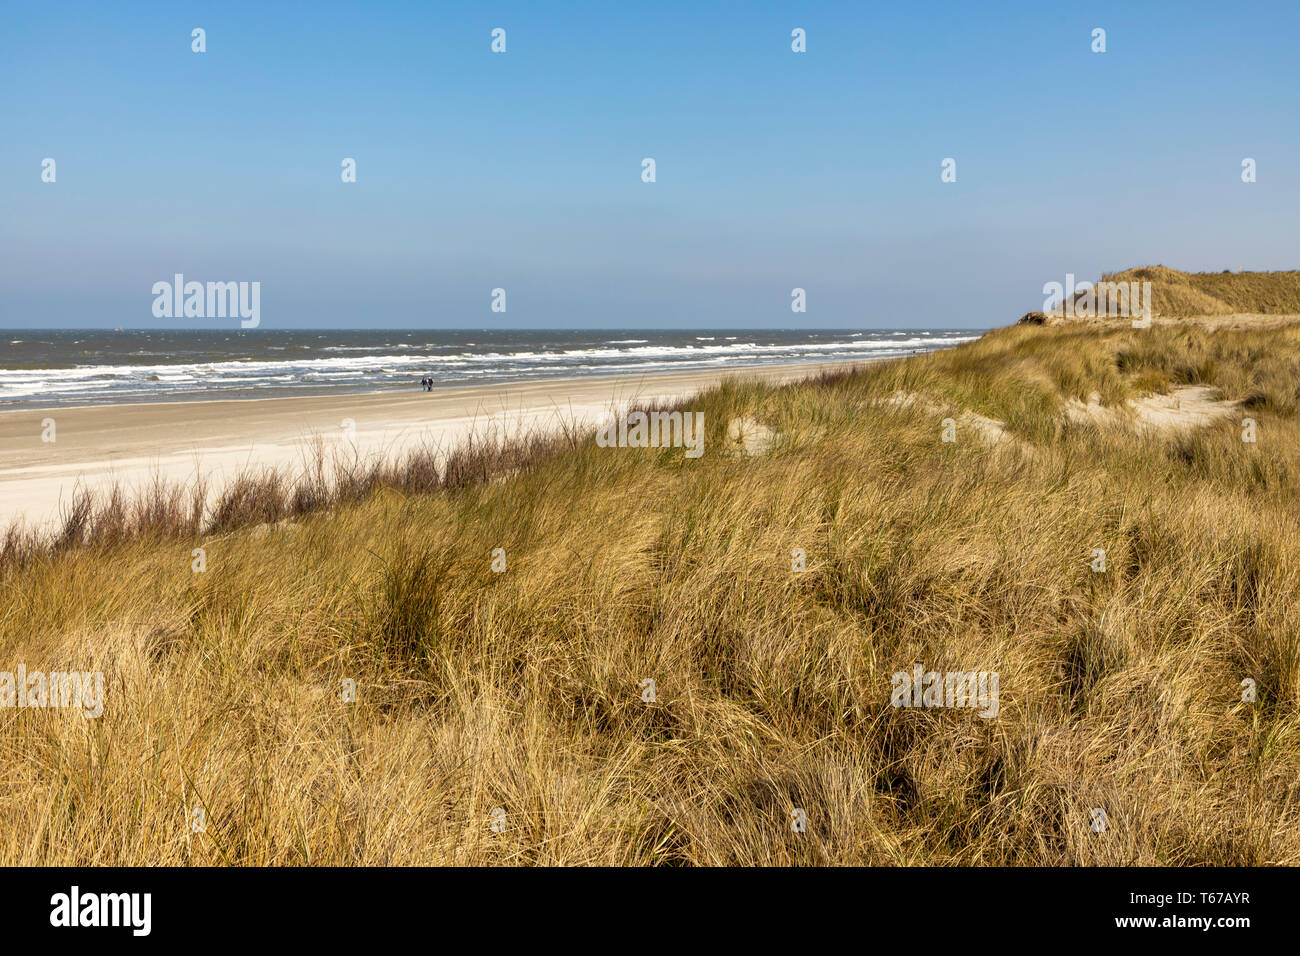 North Sea island Juist, East Frisia, Beach, Dunes landscape, Lower Saxony, Germany, - Stock Image